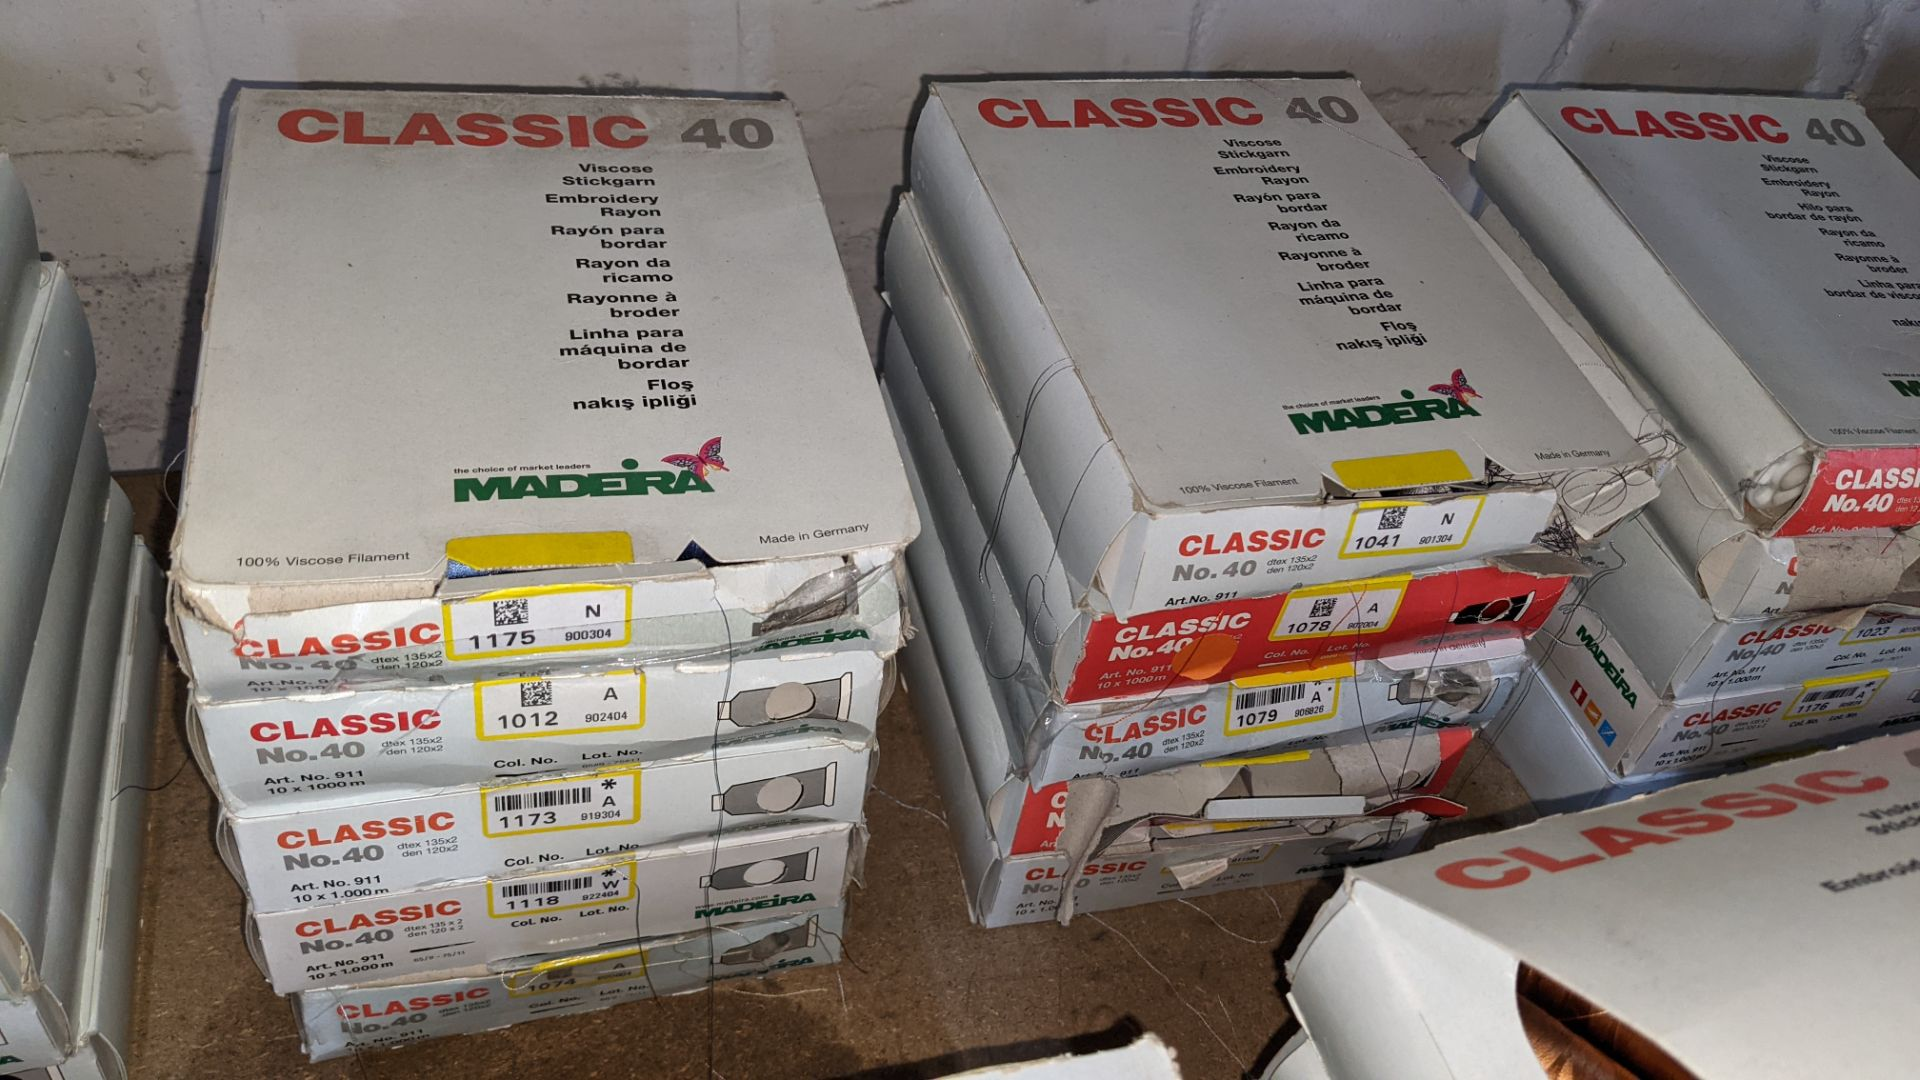 20 assorted boxes of Madeira Classic No. 40 embroidery rayon thread - Image 4 of 8